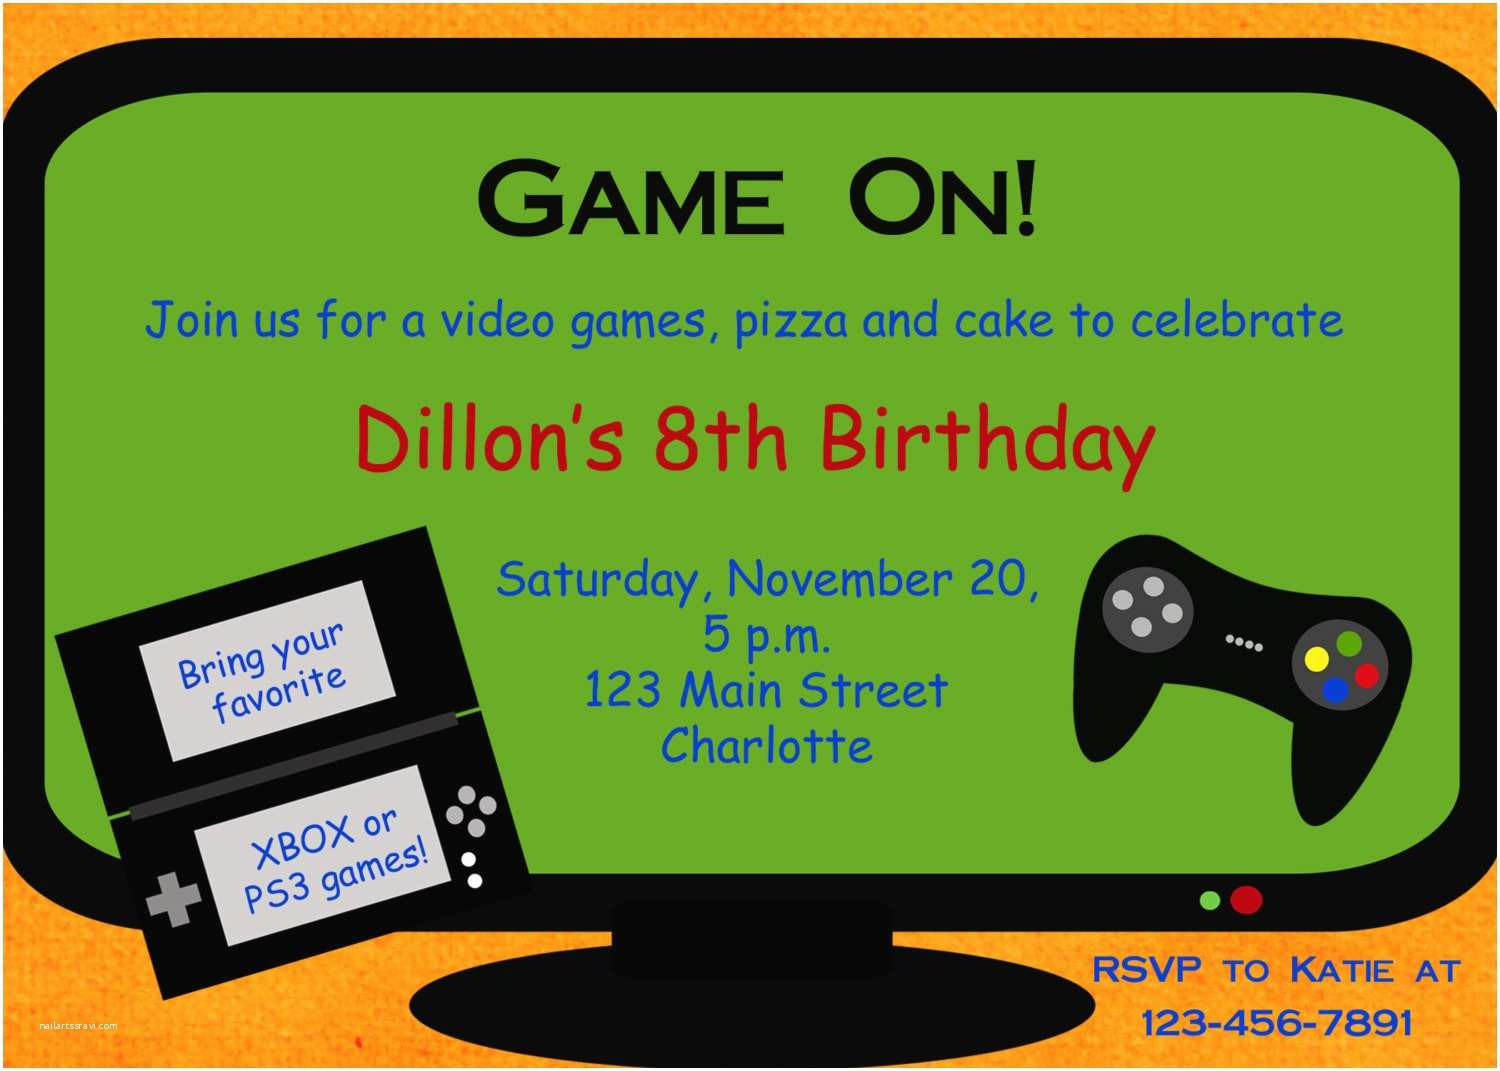 Video Game Party Invitations Video Game Party Invitations Video Game Party Invitations